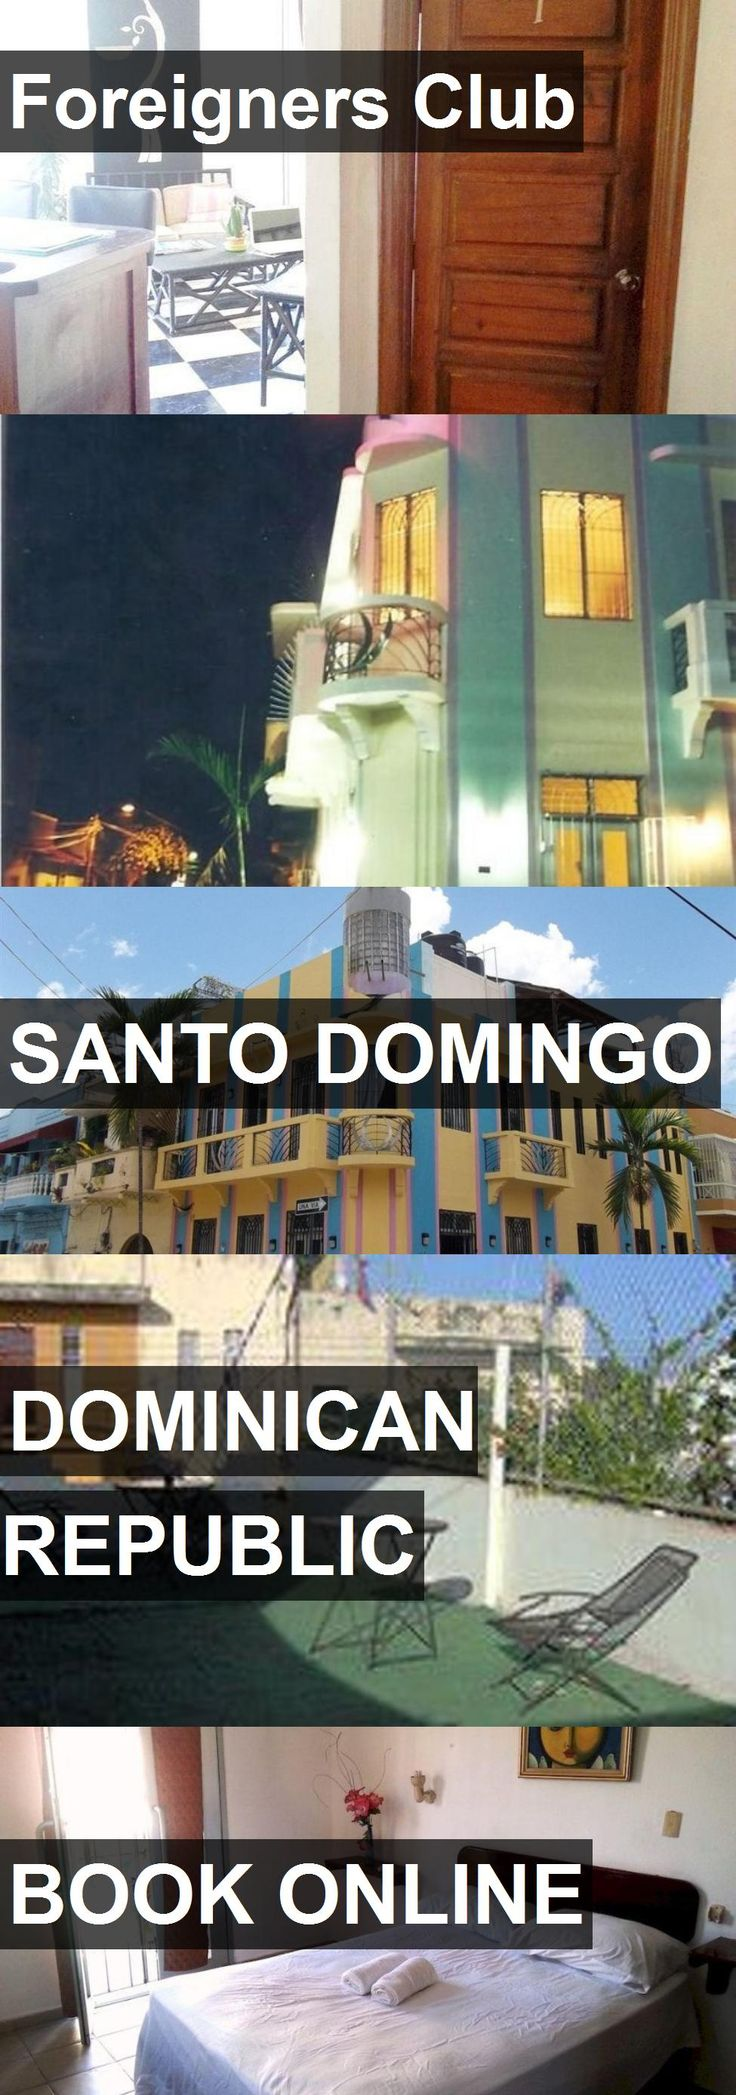 Hotel Foreigners Club in Santo Domingo, Dominican Republic. For more information, photos, reviews and best prices please follow the link. #DominicanRepublic #SantoDomingo #ForeignersClub #hotel #travel #vacation